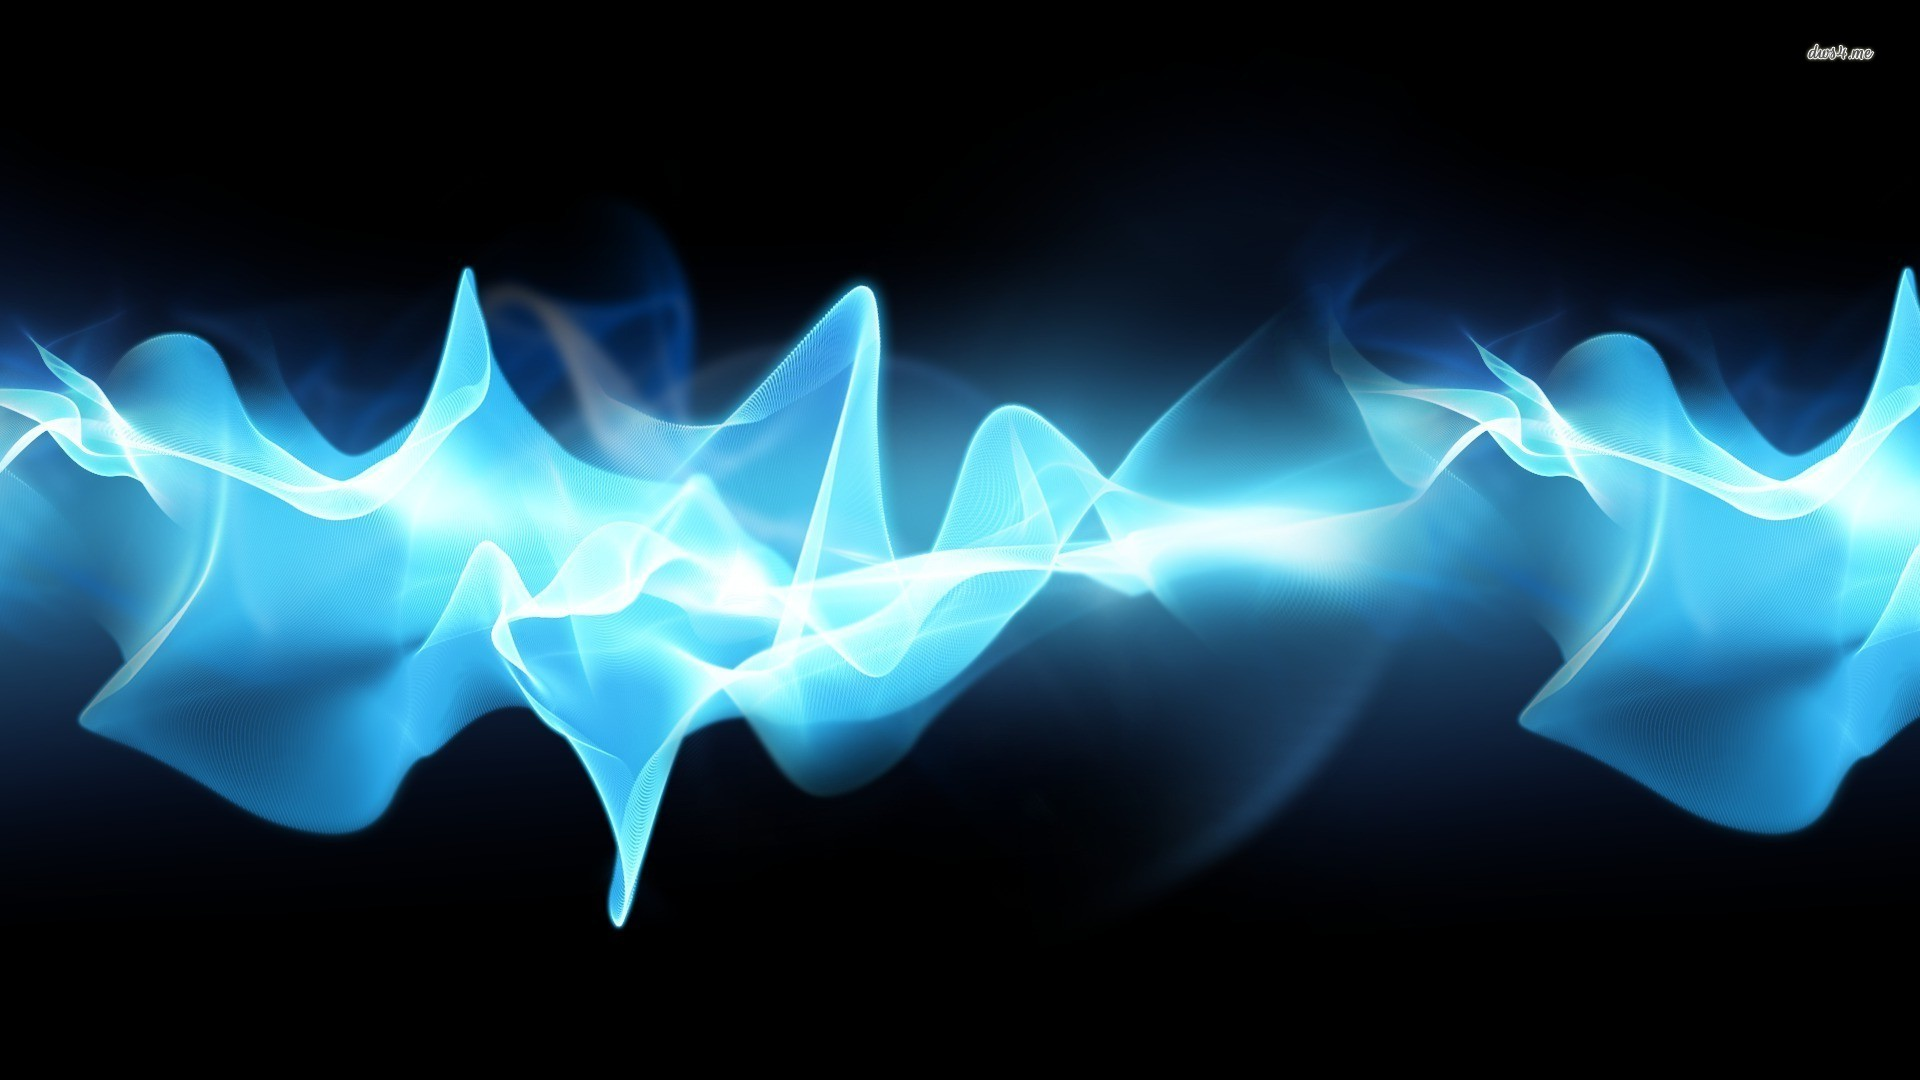 Abstract Sound Waves Wallpapers PC Abstract Sound Waves 1920x1080